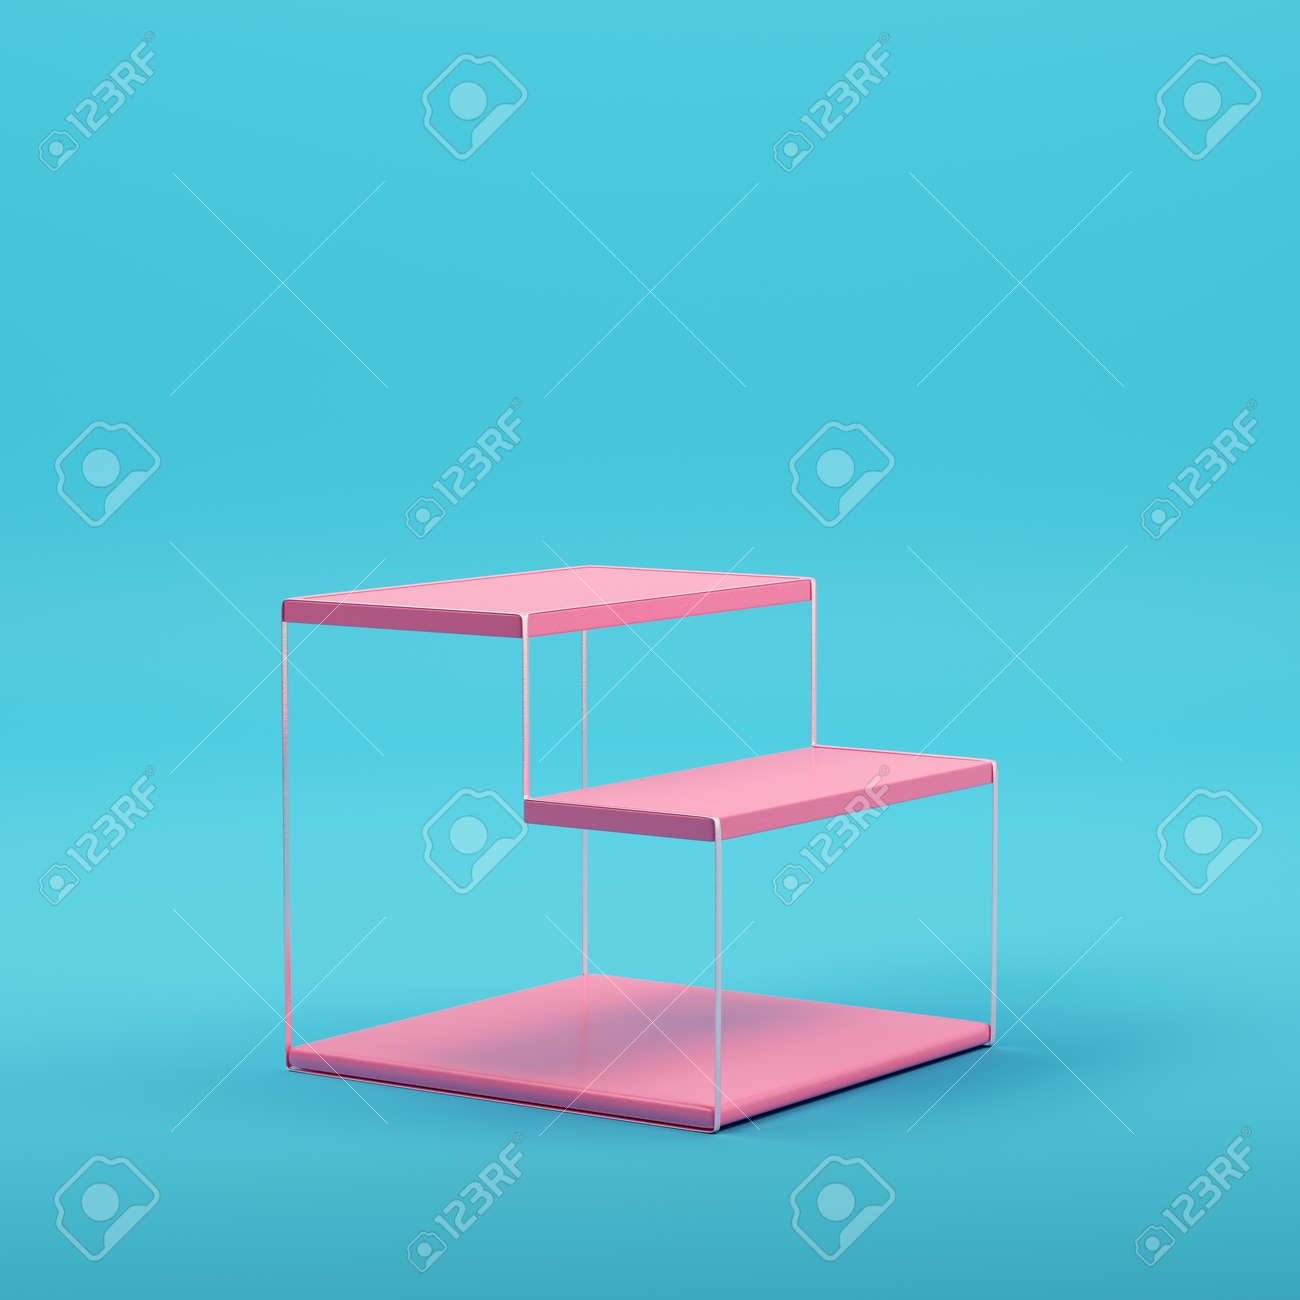 Pink empty glowing product display on bright blue background in pastel colors. Minimalism concept. 3d render - 172255041